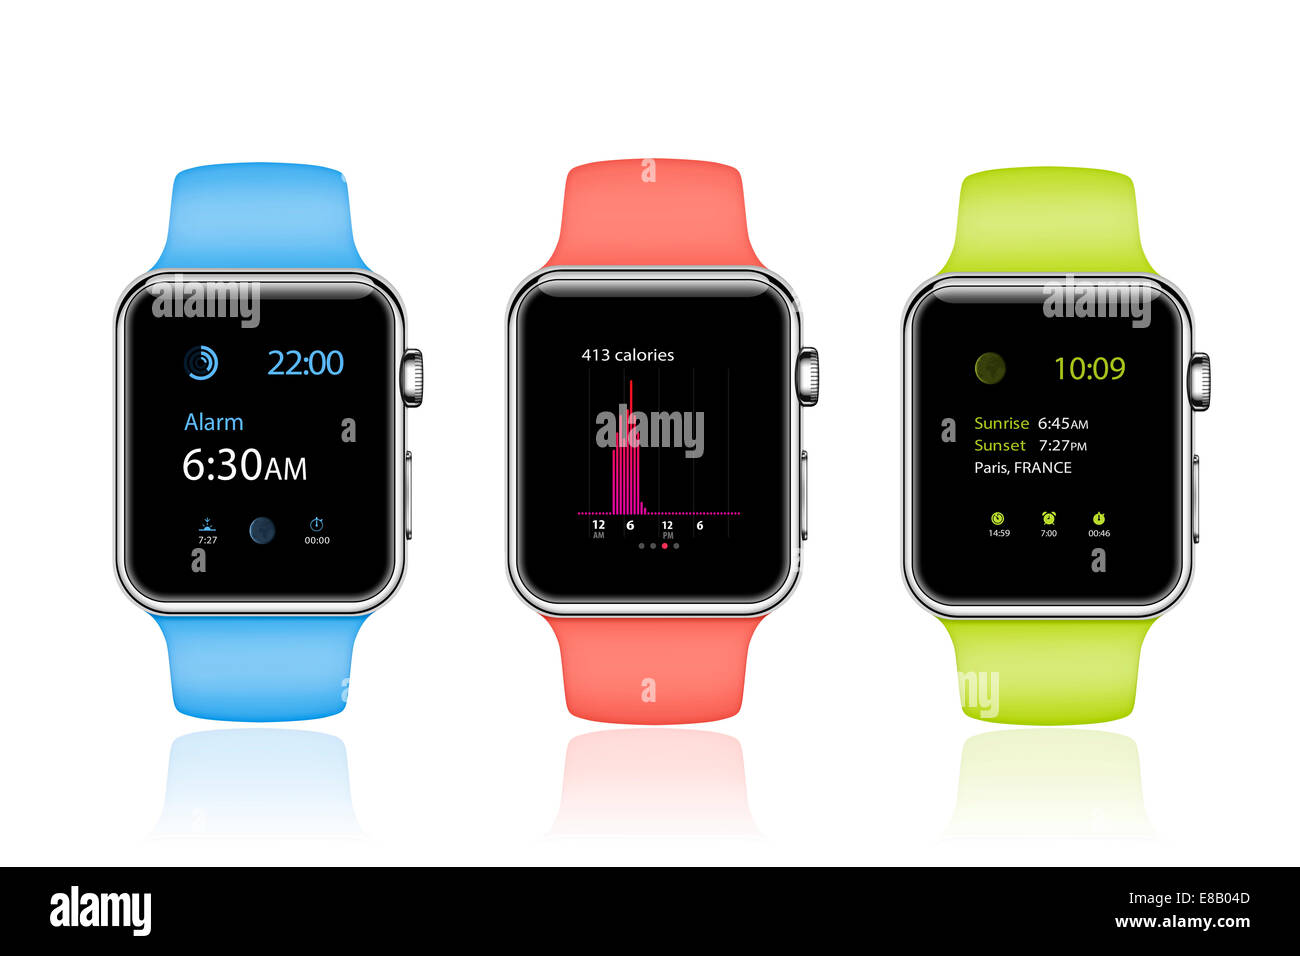 Apple Watch sport (blue, pink, green) mobile device, digitally generated images. - Stock Image